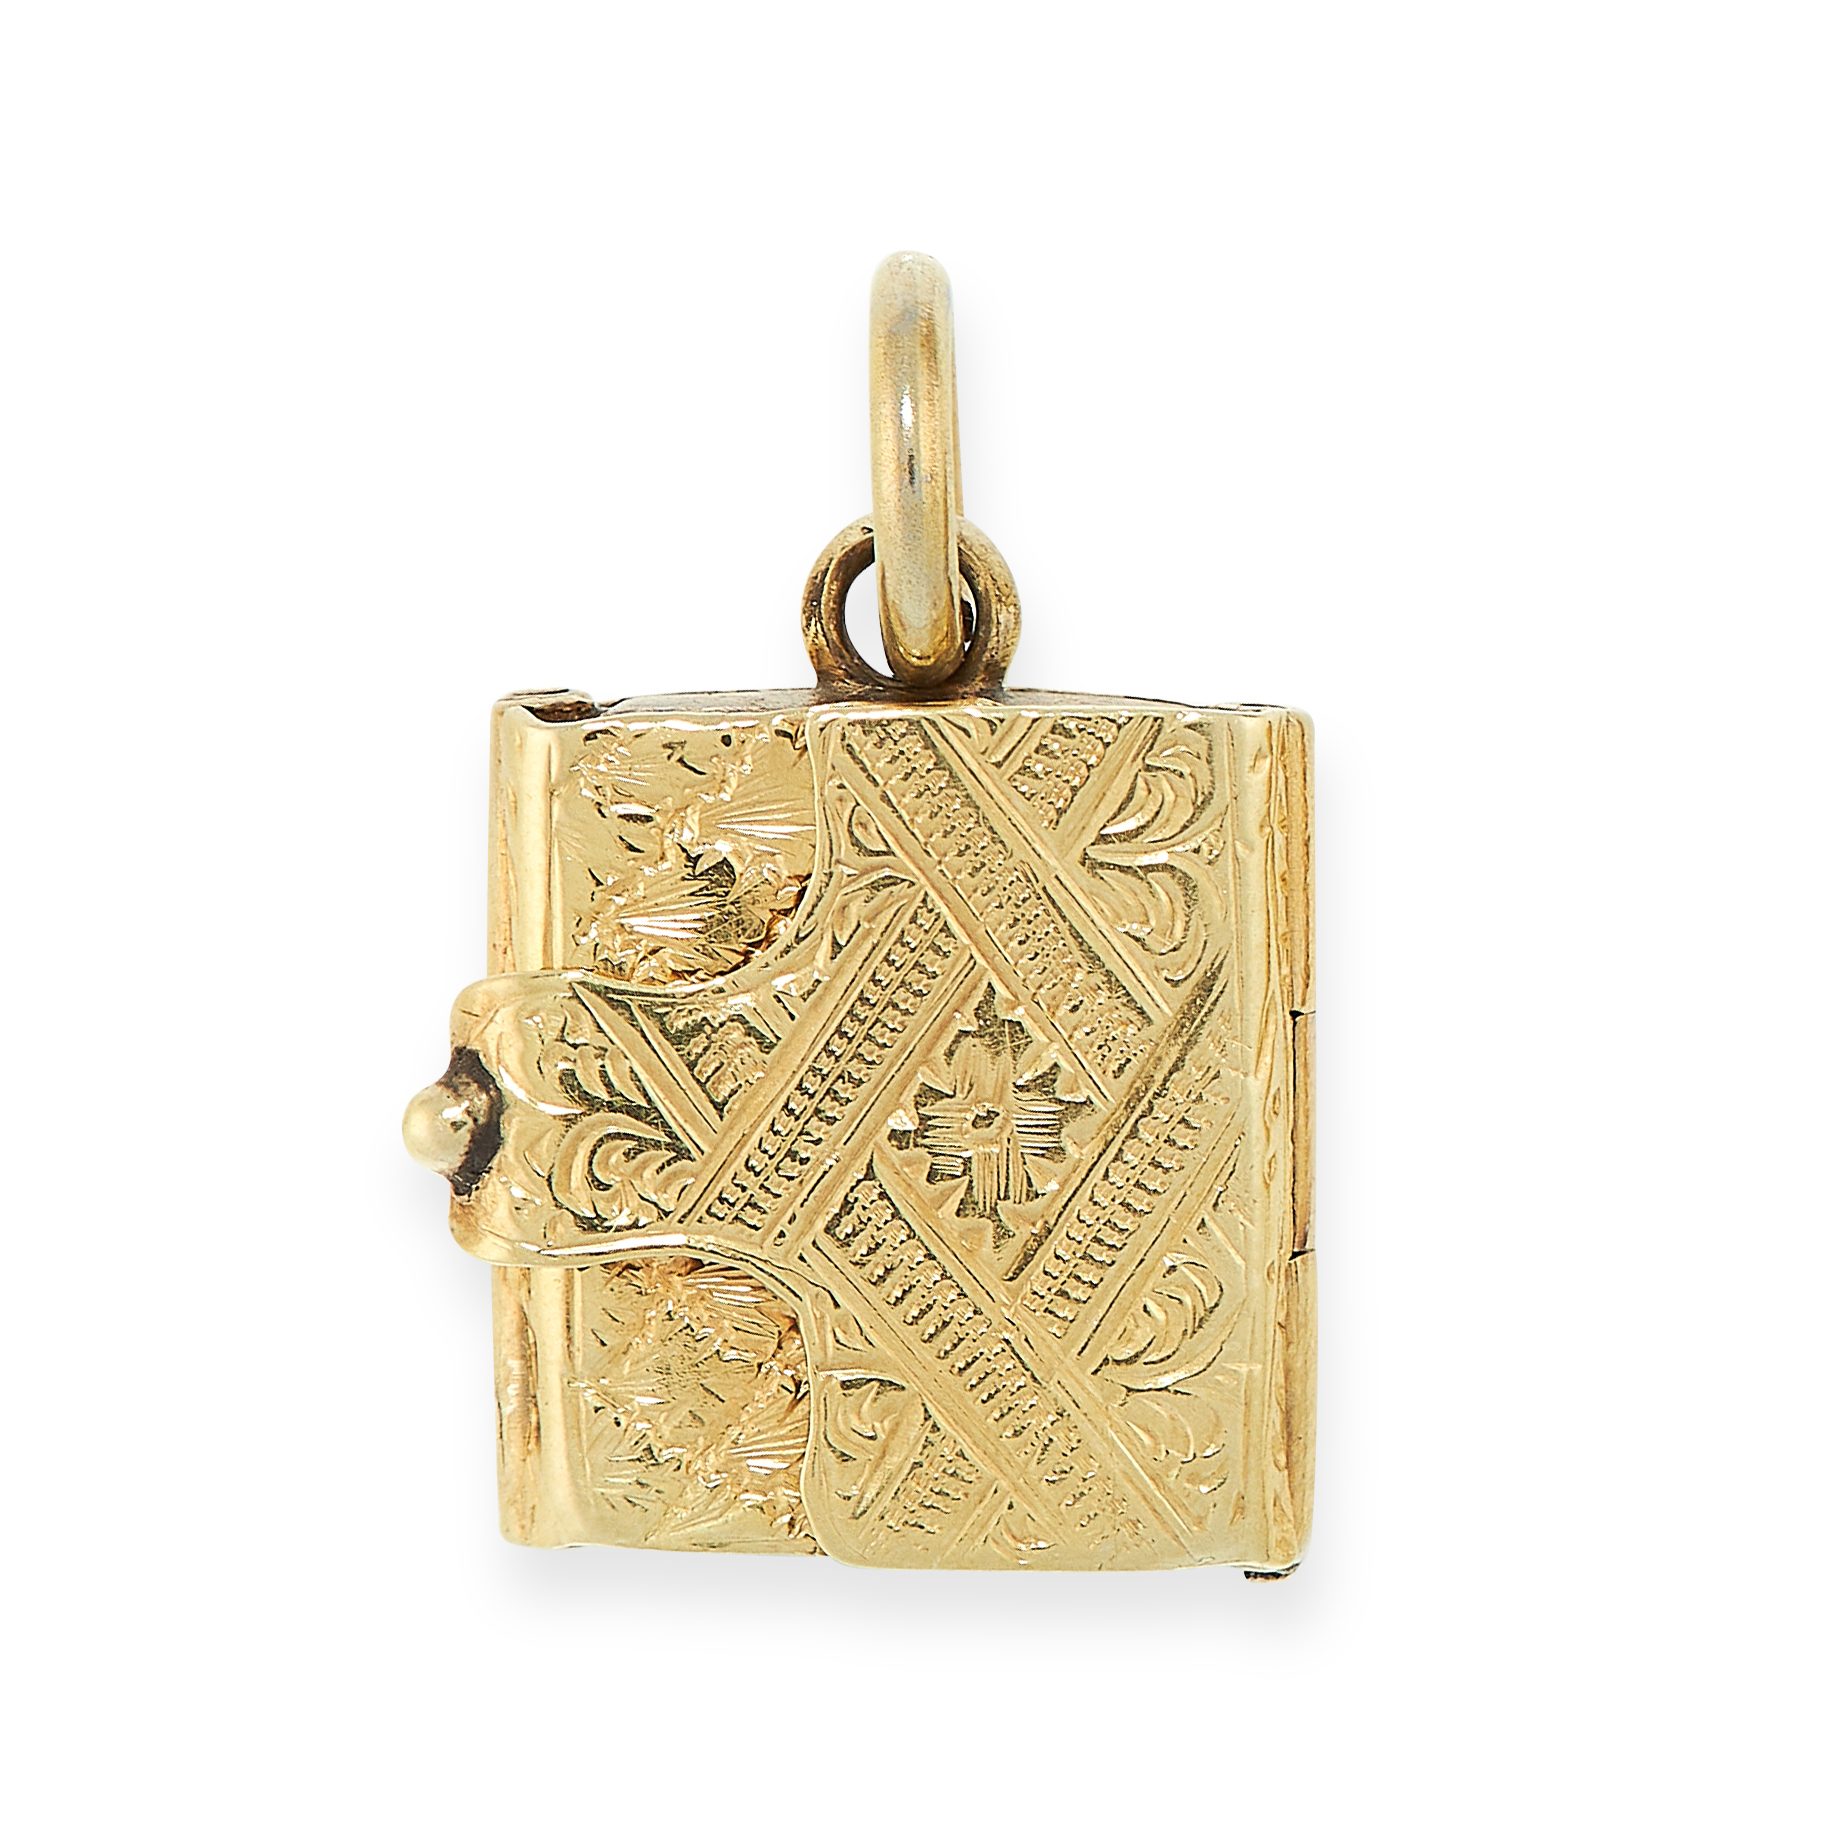 ANTIQUE MOURNING LOCKET BOOK CHARM PENDANT in yellow gold, detailed in textured design, opening to